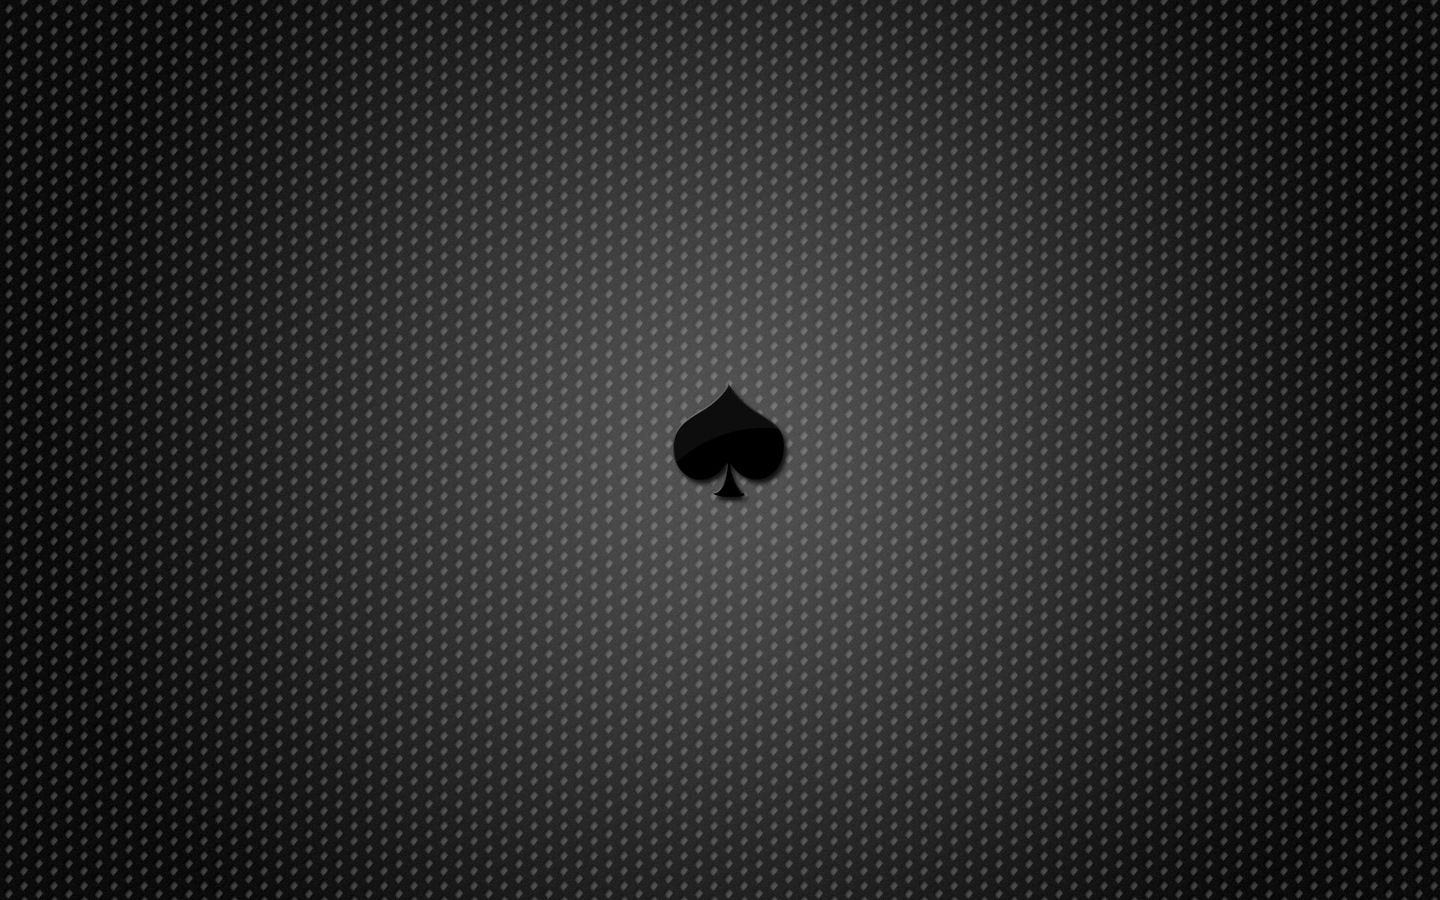 Ace Of Spades Wallpaper 2015 Wallpaper Box 1440x900